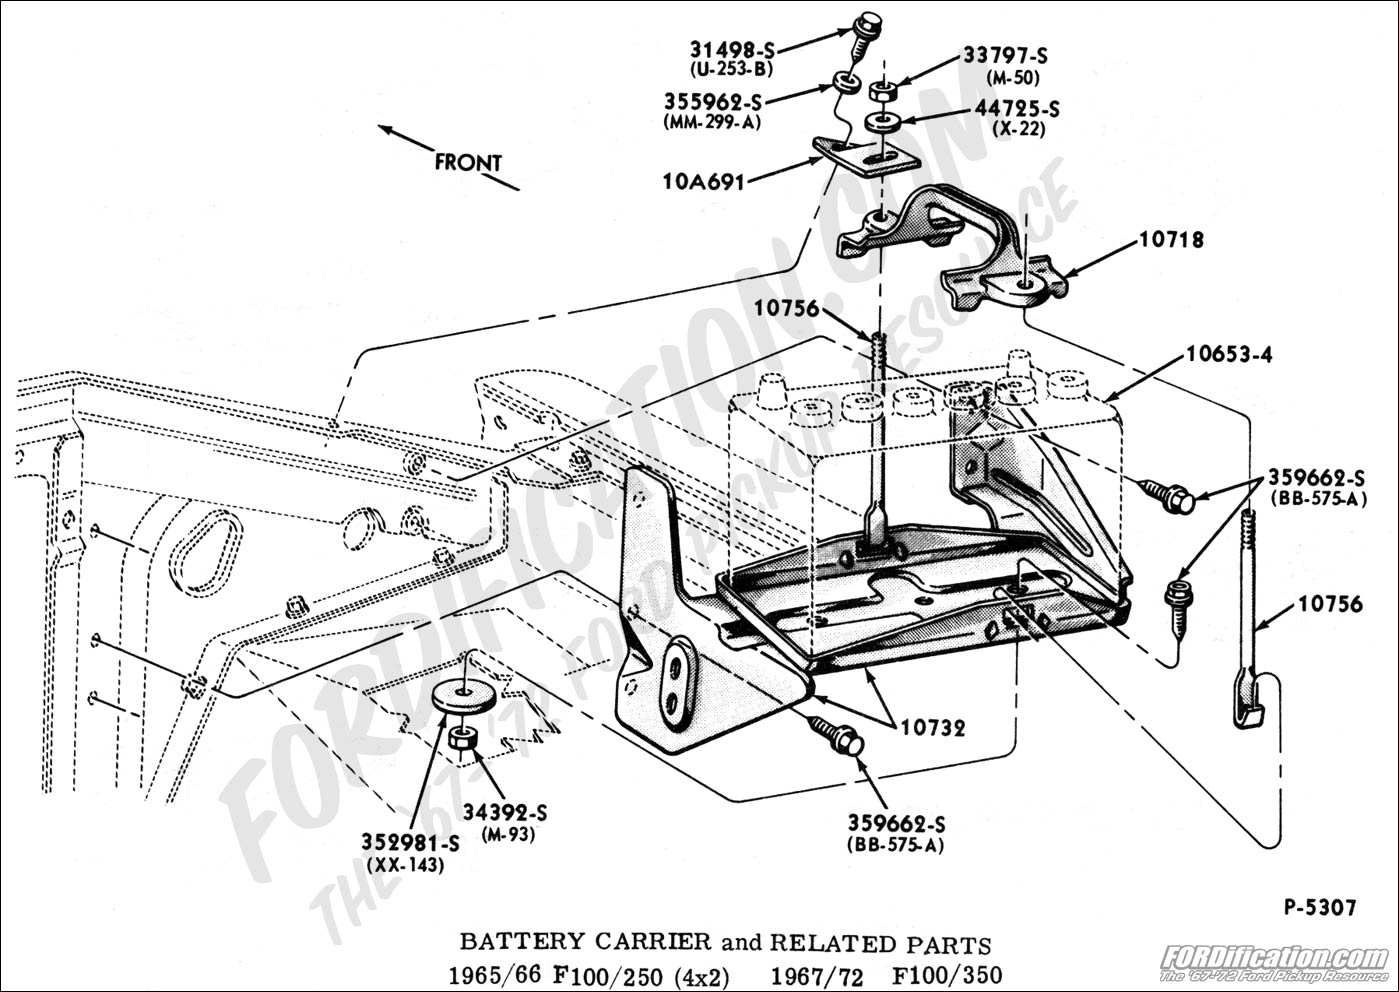 1970 Ford F100 240 Wiring Diagram Will Be A Thing 1965 Turn Signal Truck Technical Drawings And Schematics Section I Alternator Diagrams For 1966 Pick Up V8